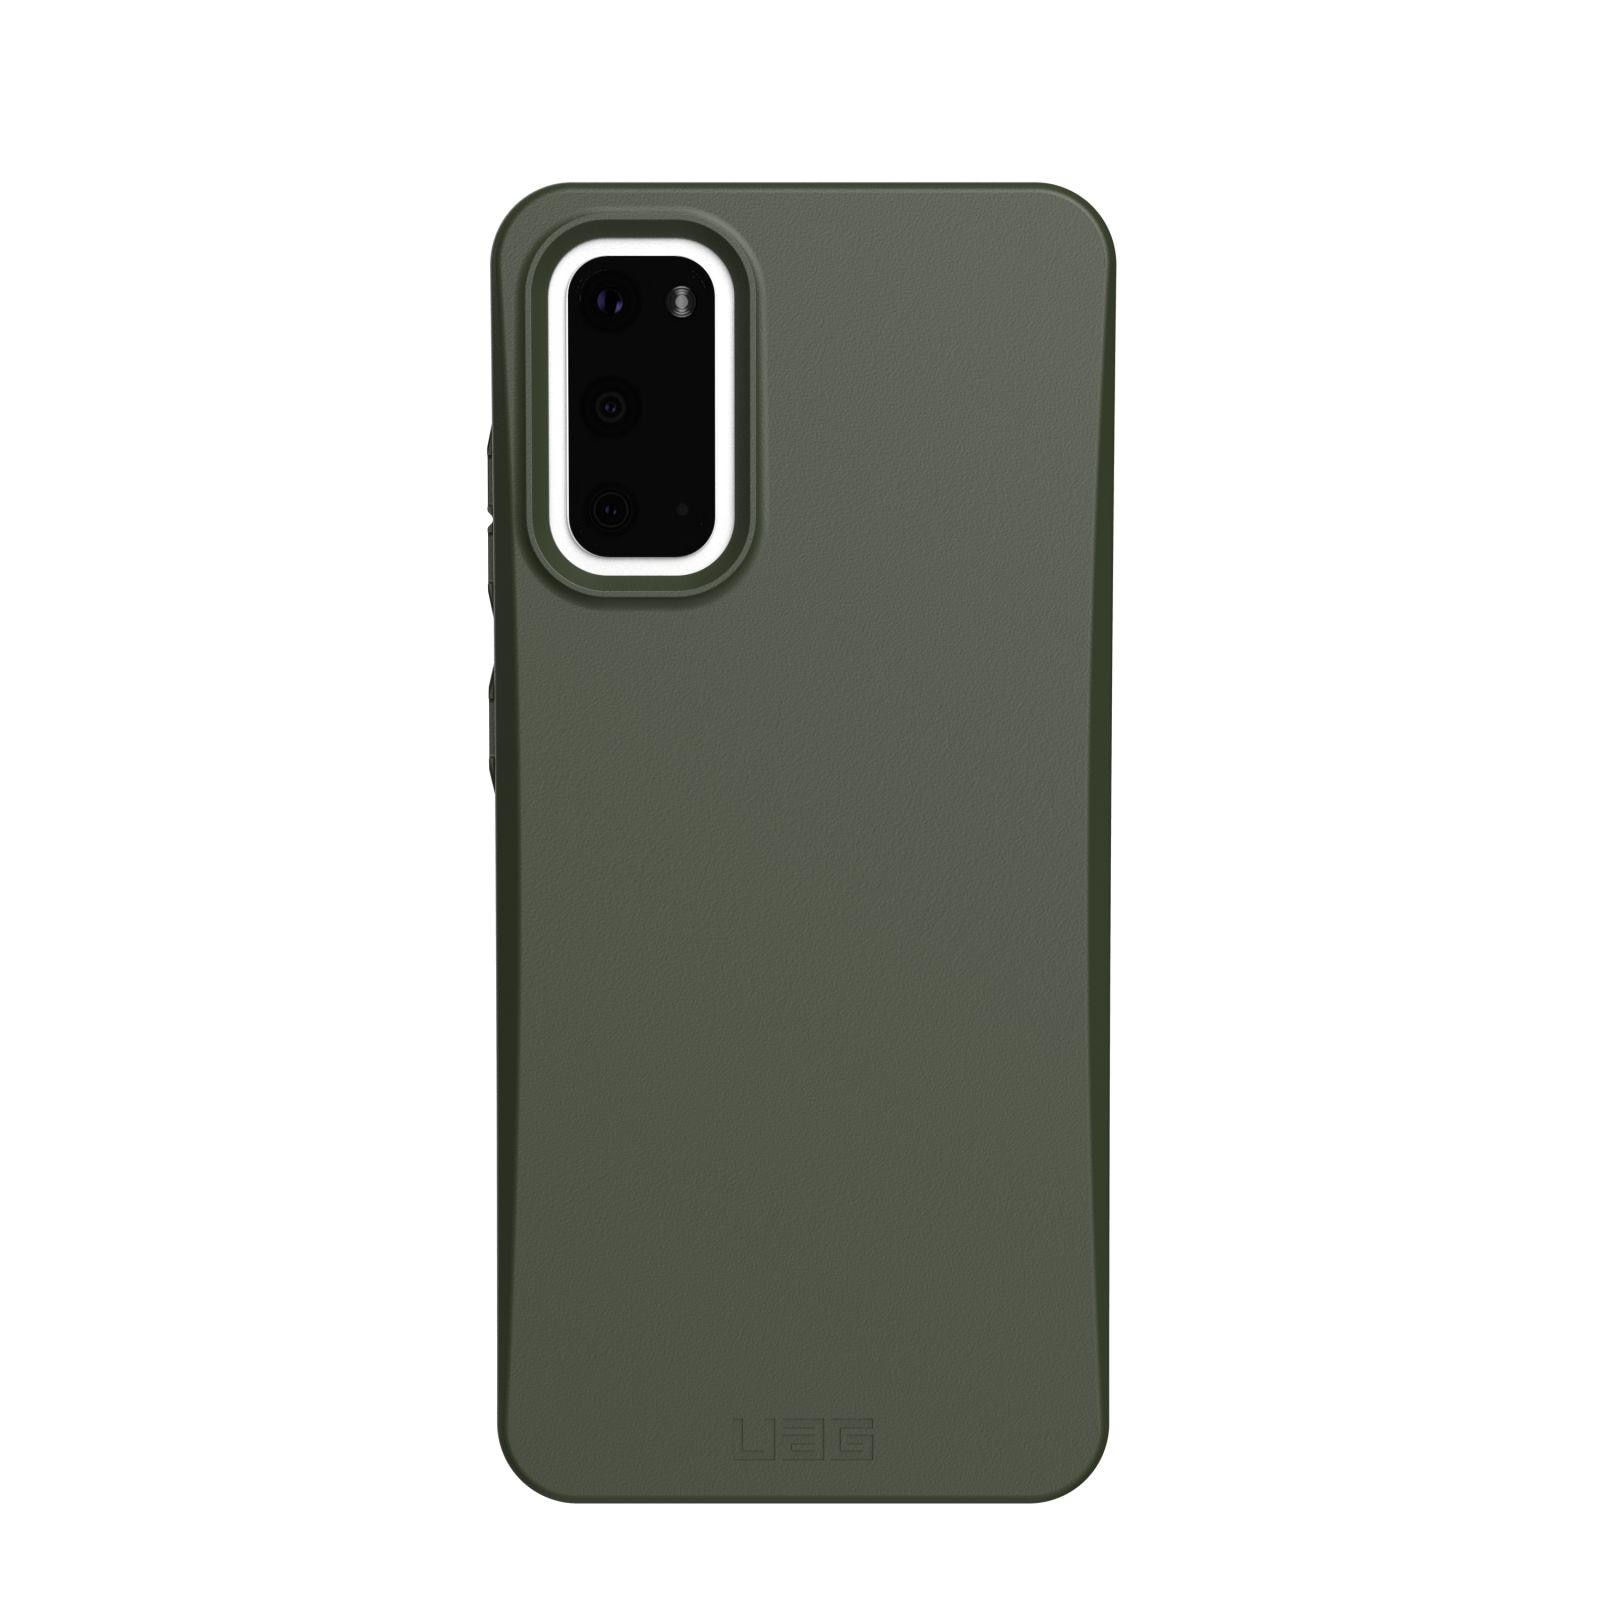 Outback Biodegradable Case Galaxy S20 Olive